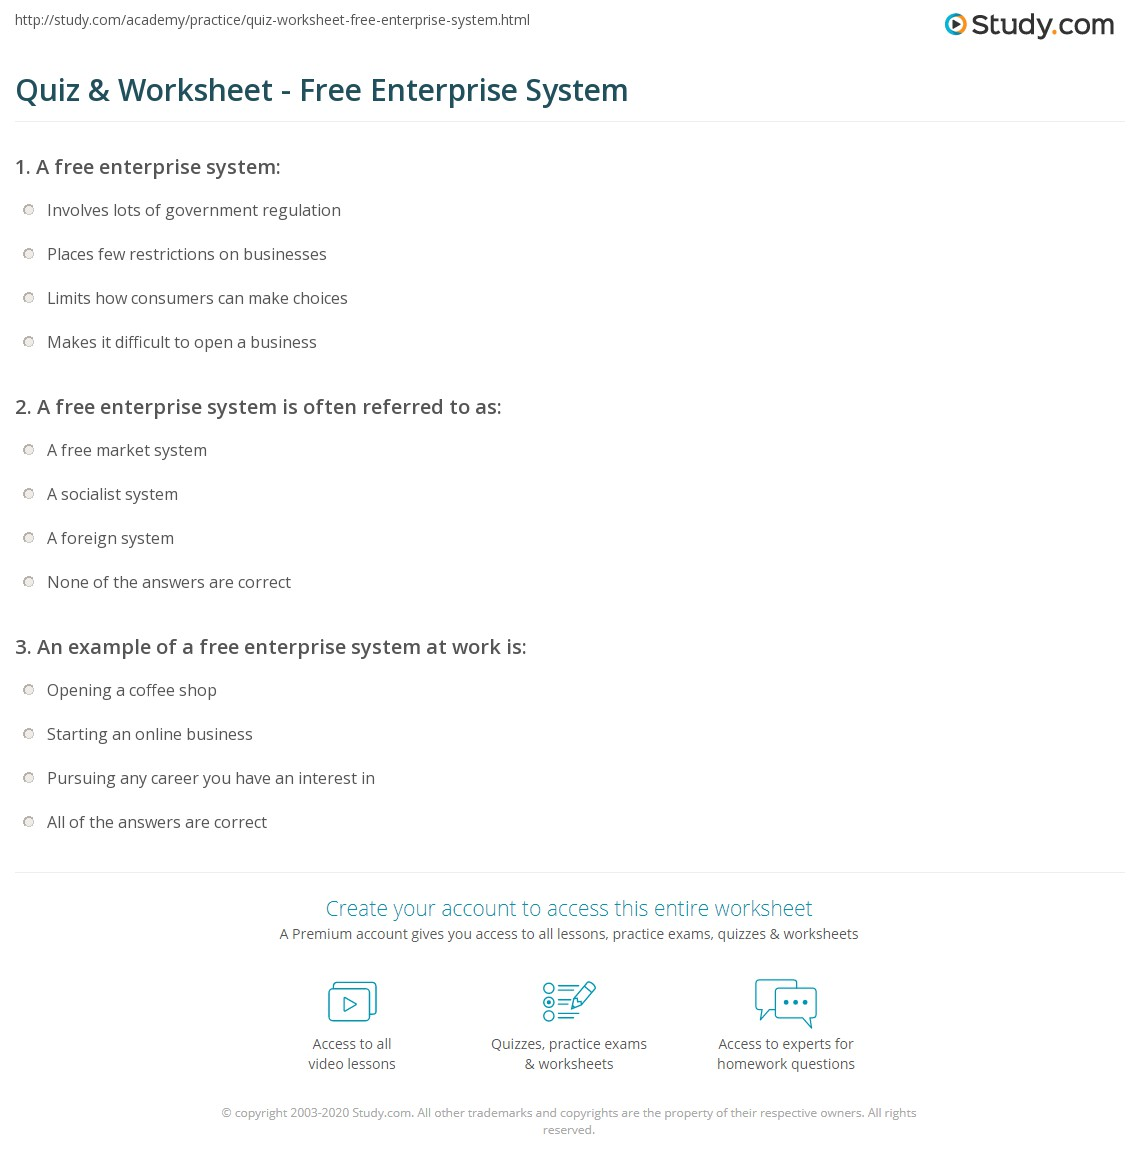 quiz & worksheet - free enterprise system | study